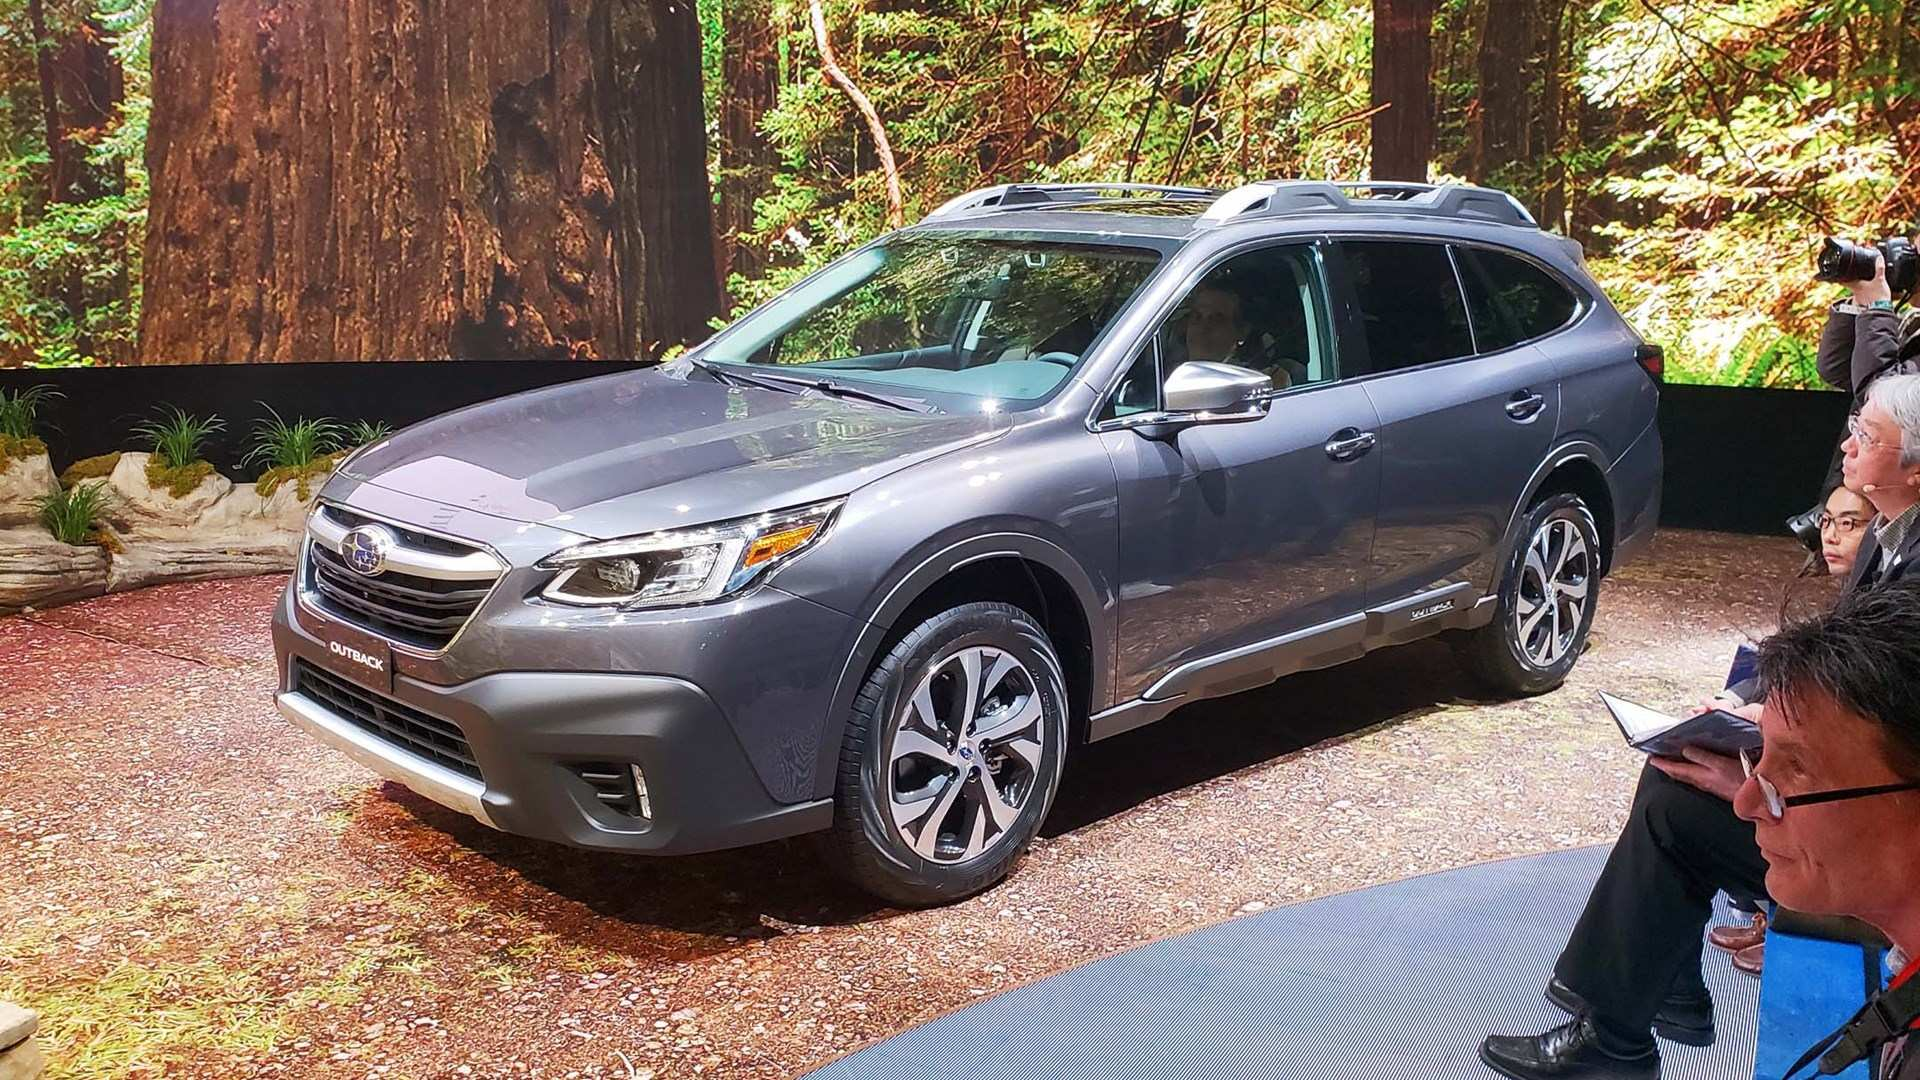 43 New Subaru Outback 2020 Release Date Overview